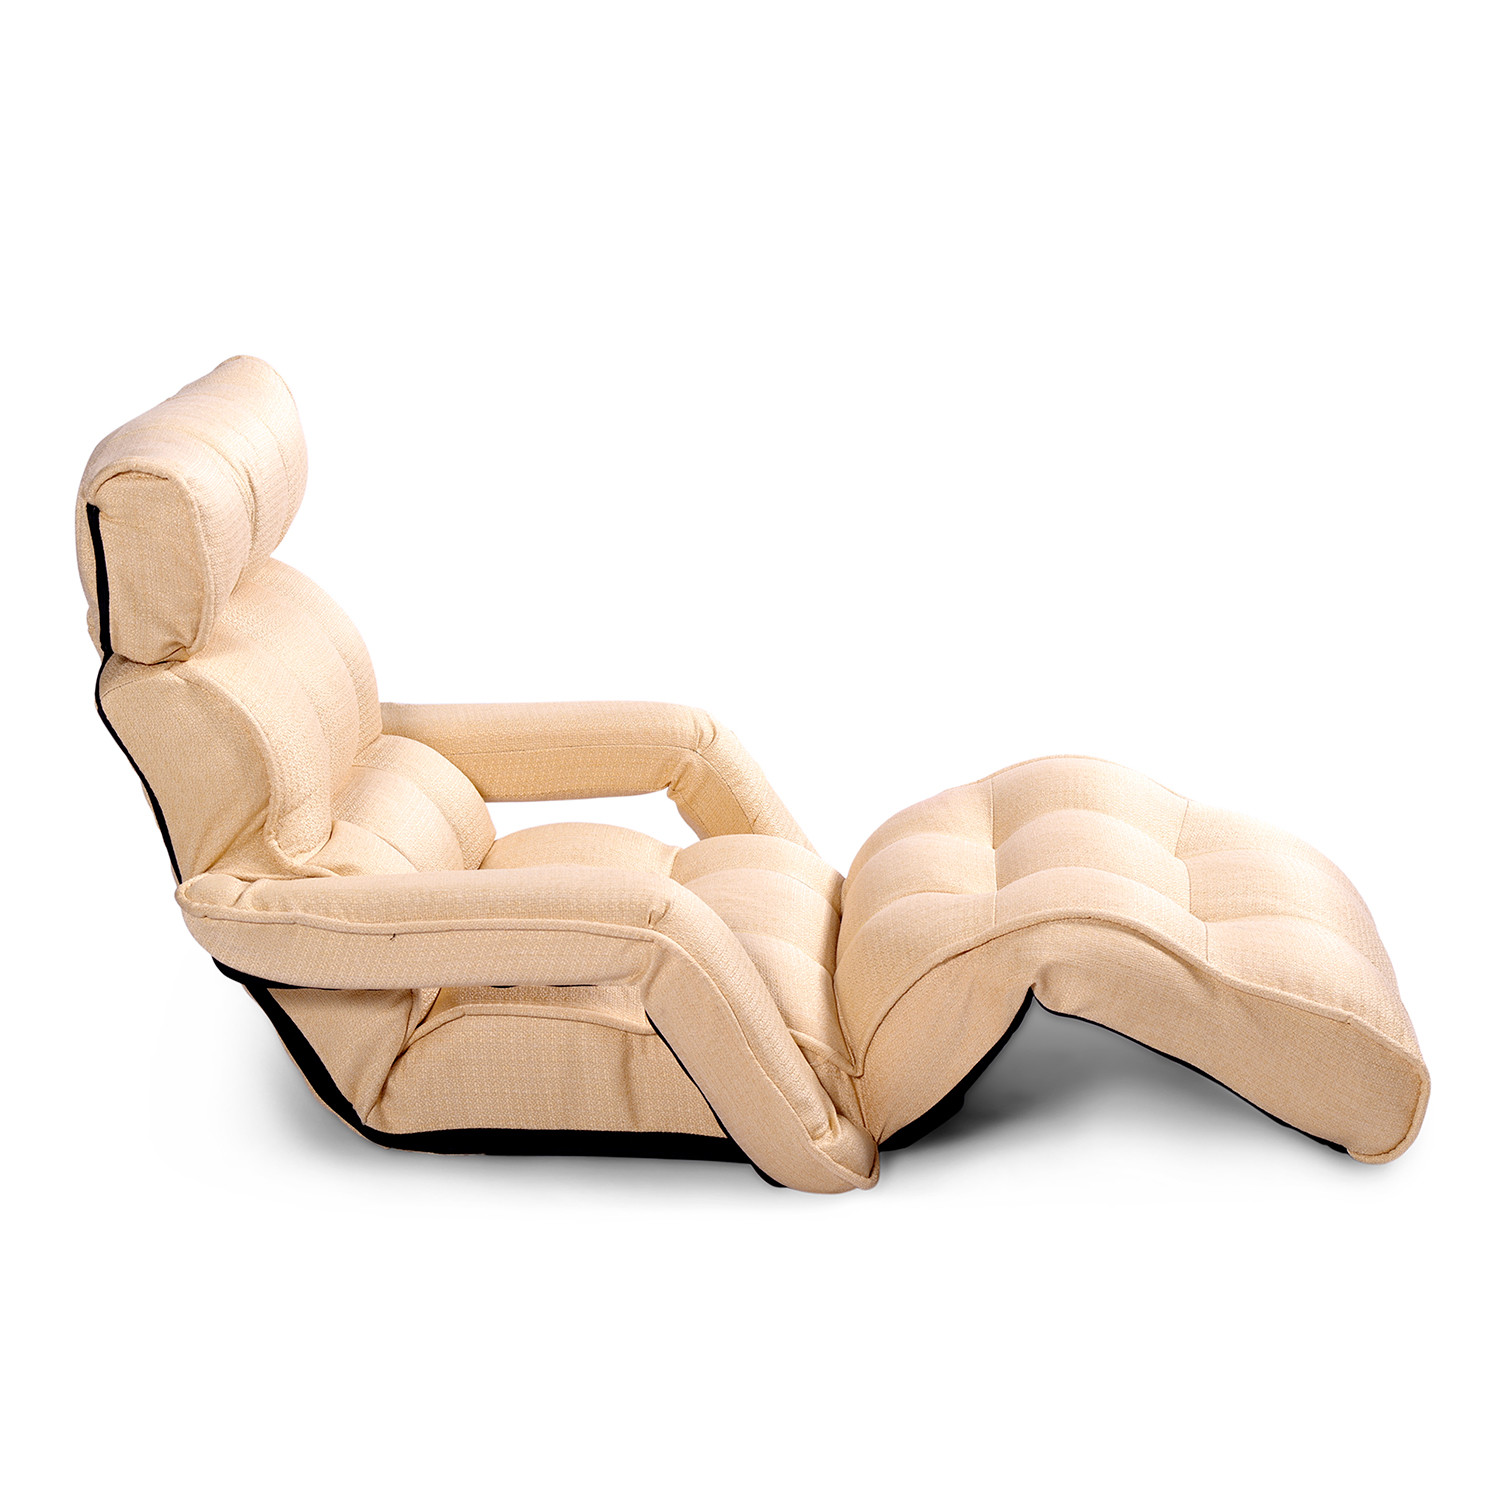 pro sofa chair recliner buttercup yellow cozy kino. Black Bedroom Furniture Sets. Home Design Ideas